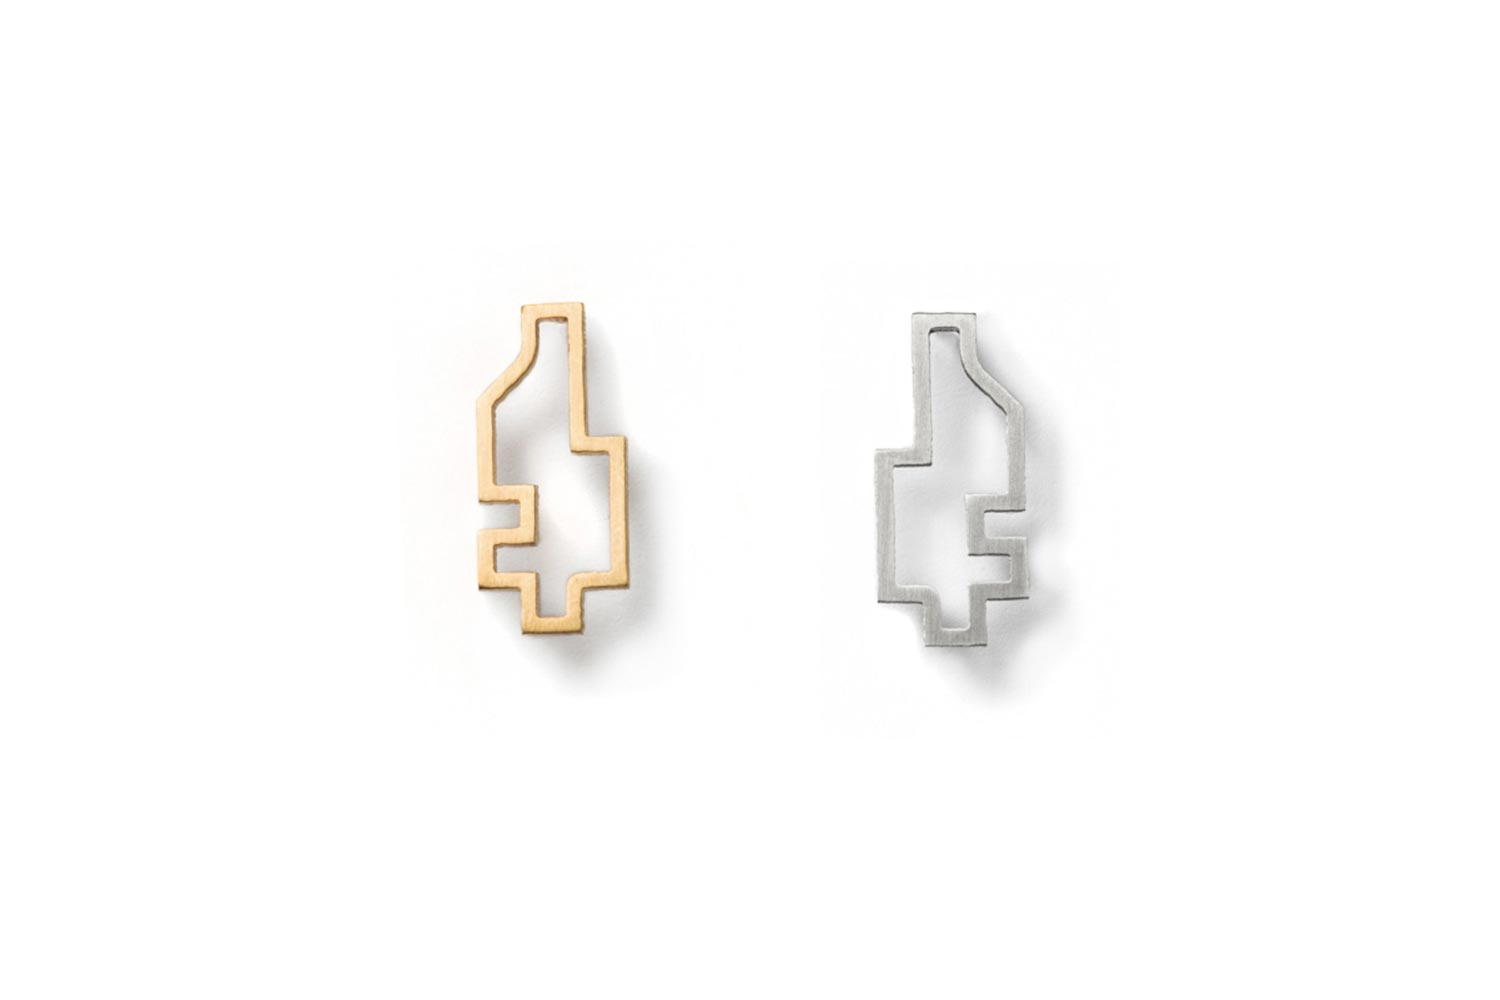 Gold and Silver Big Outline Pixel Earring hypoallergenic stainless steelg